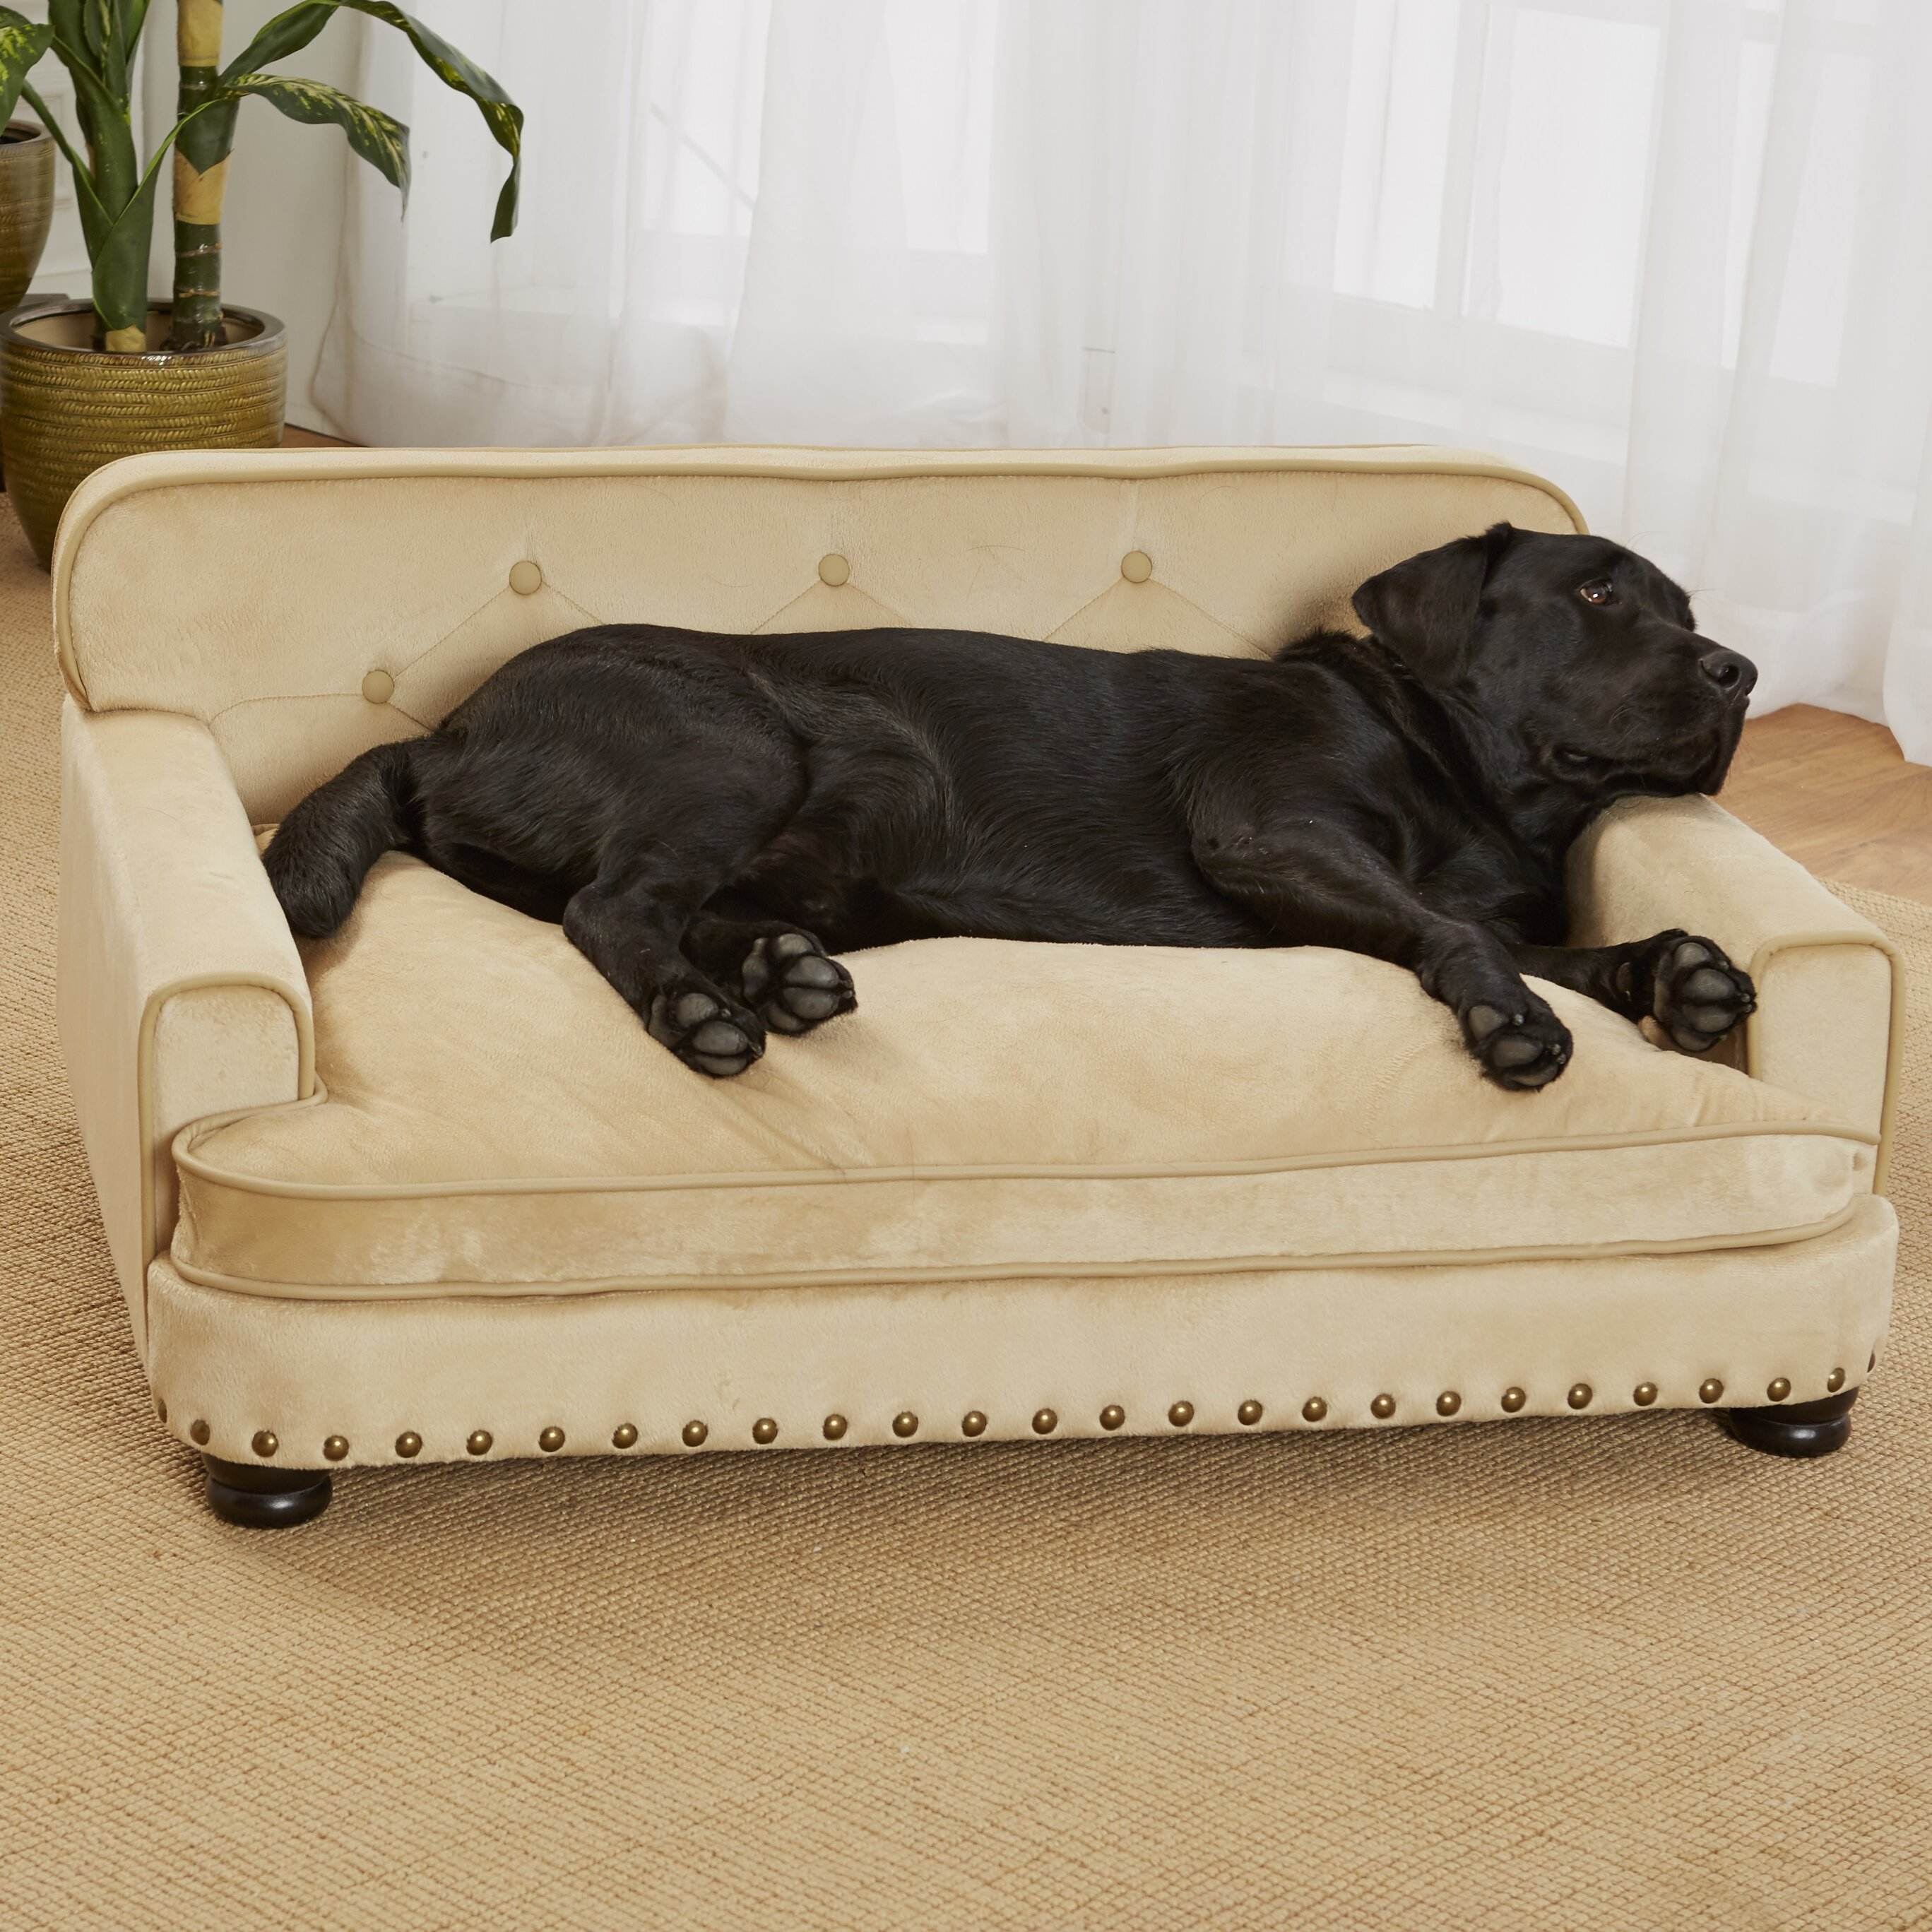 Enchanted Home Pet Library Dog Sofa Reviews Wayfair